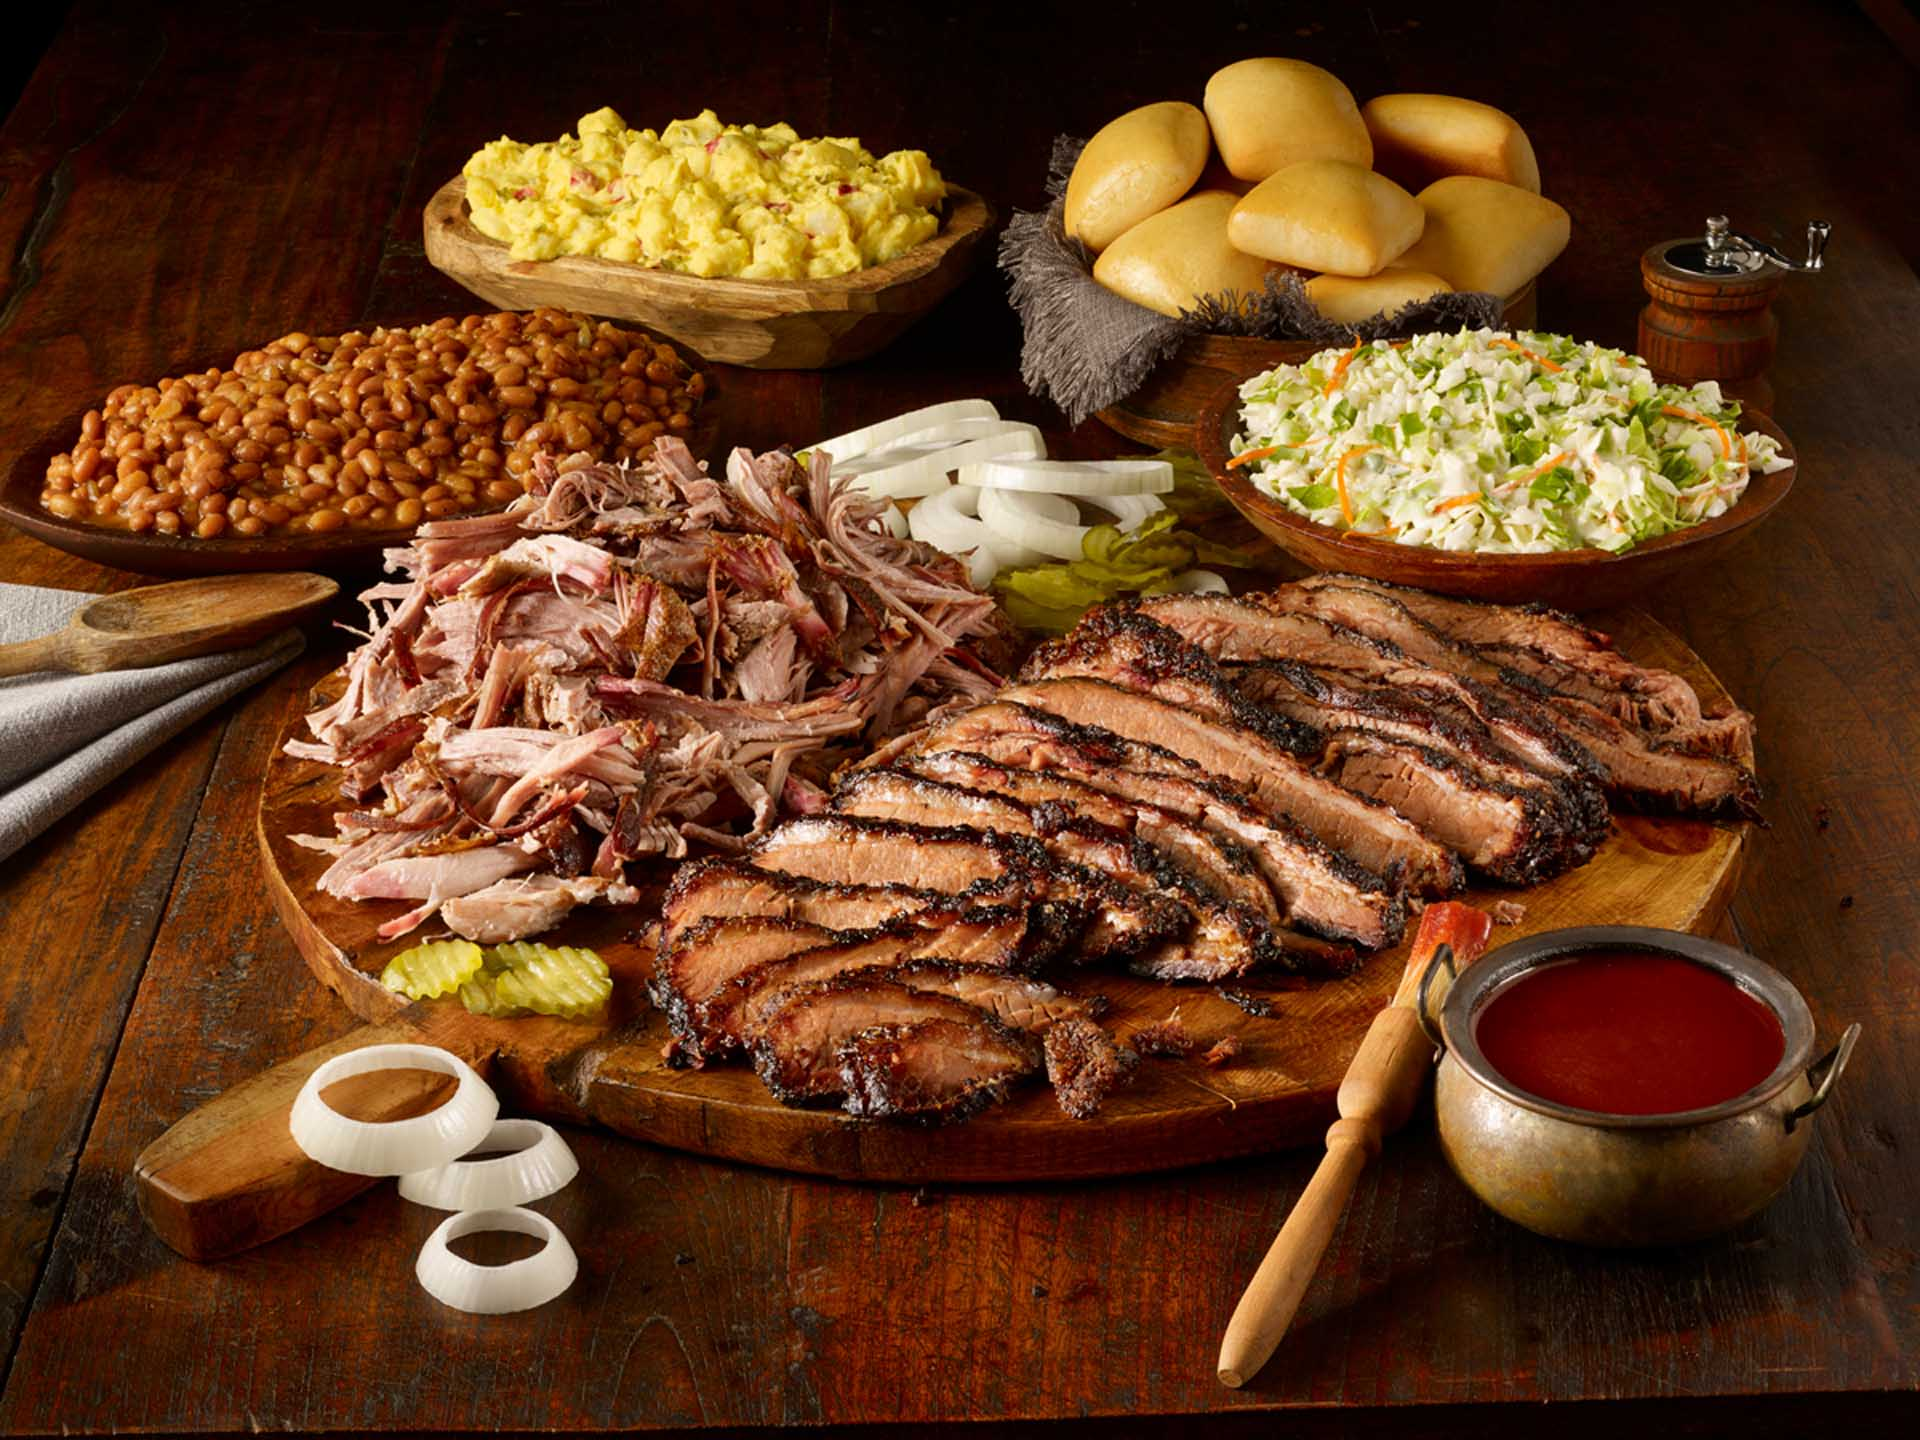 Fast Casual: Dickey's Barbecue Pit opening in Bolingbrook, Illinois